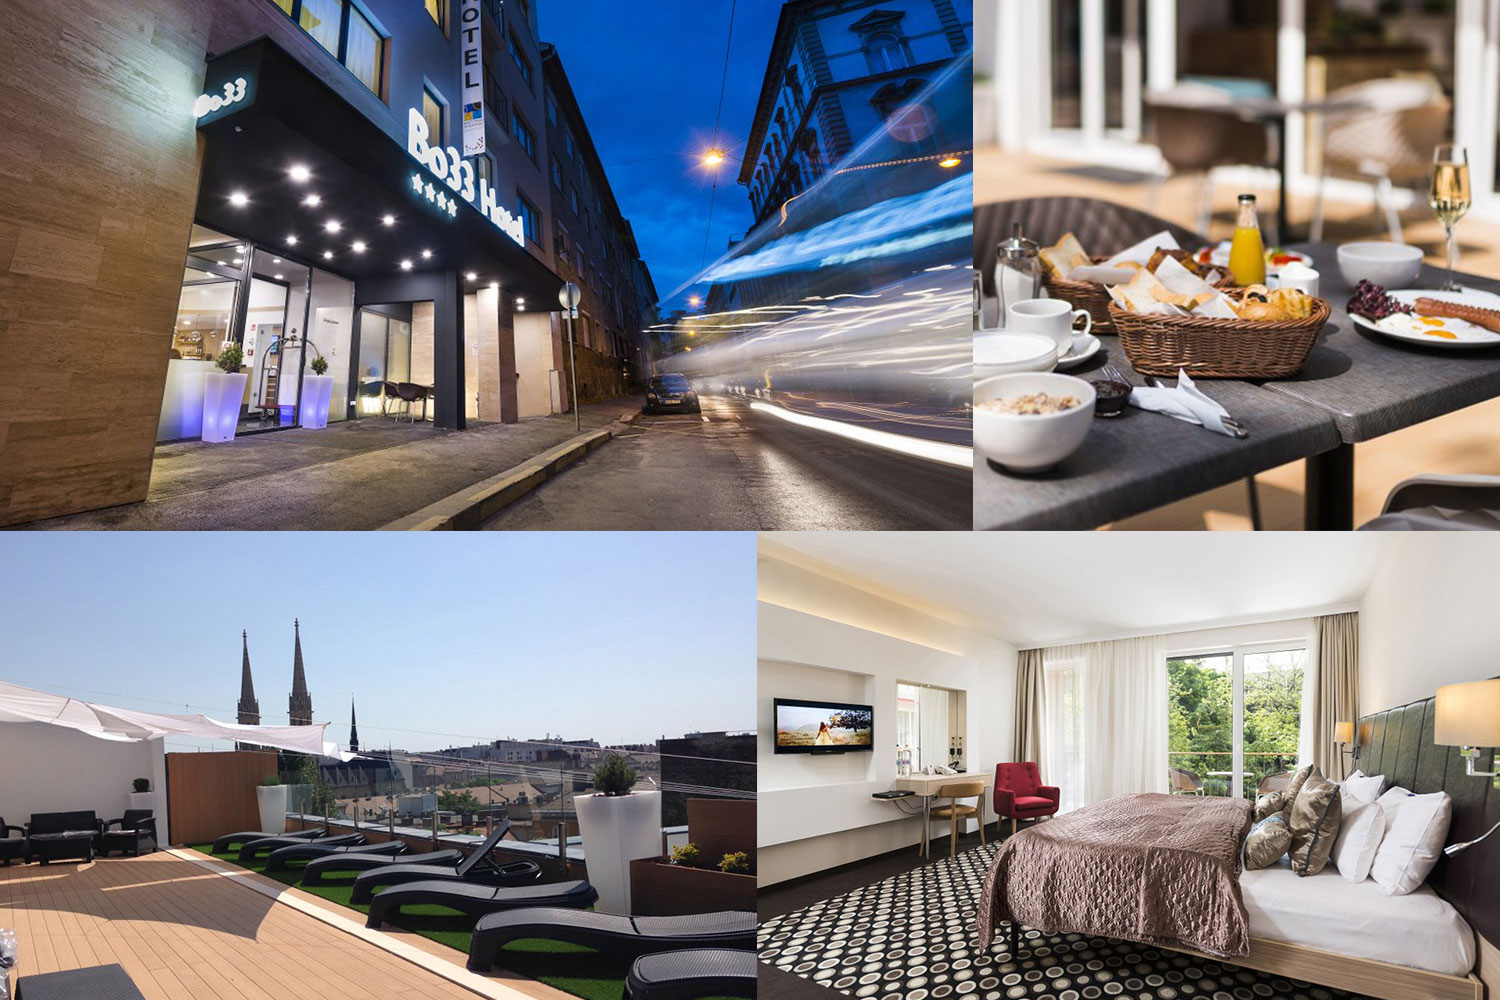 4 Tage im **** Bo33 Hotel Family & Suites in Budapest erleben